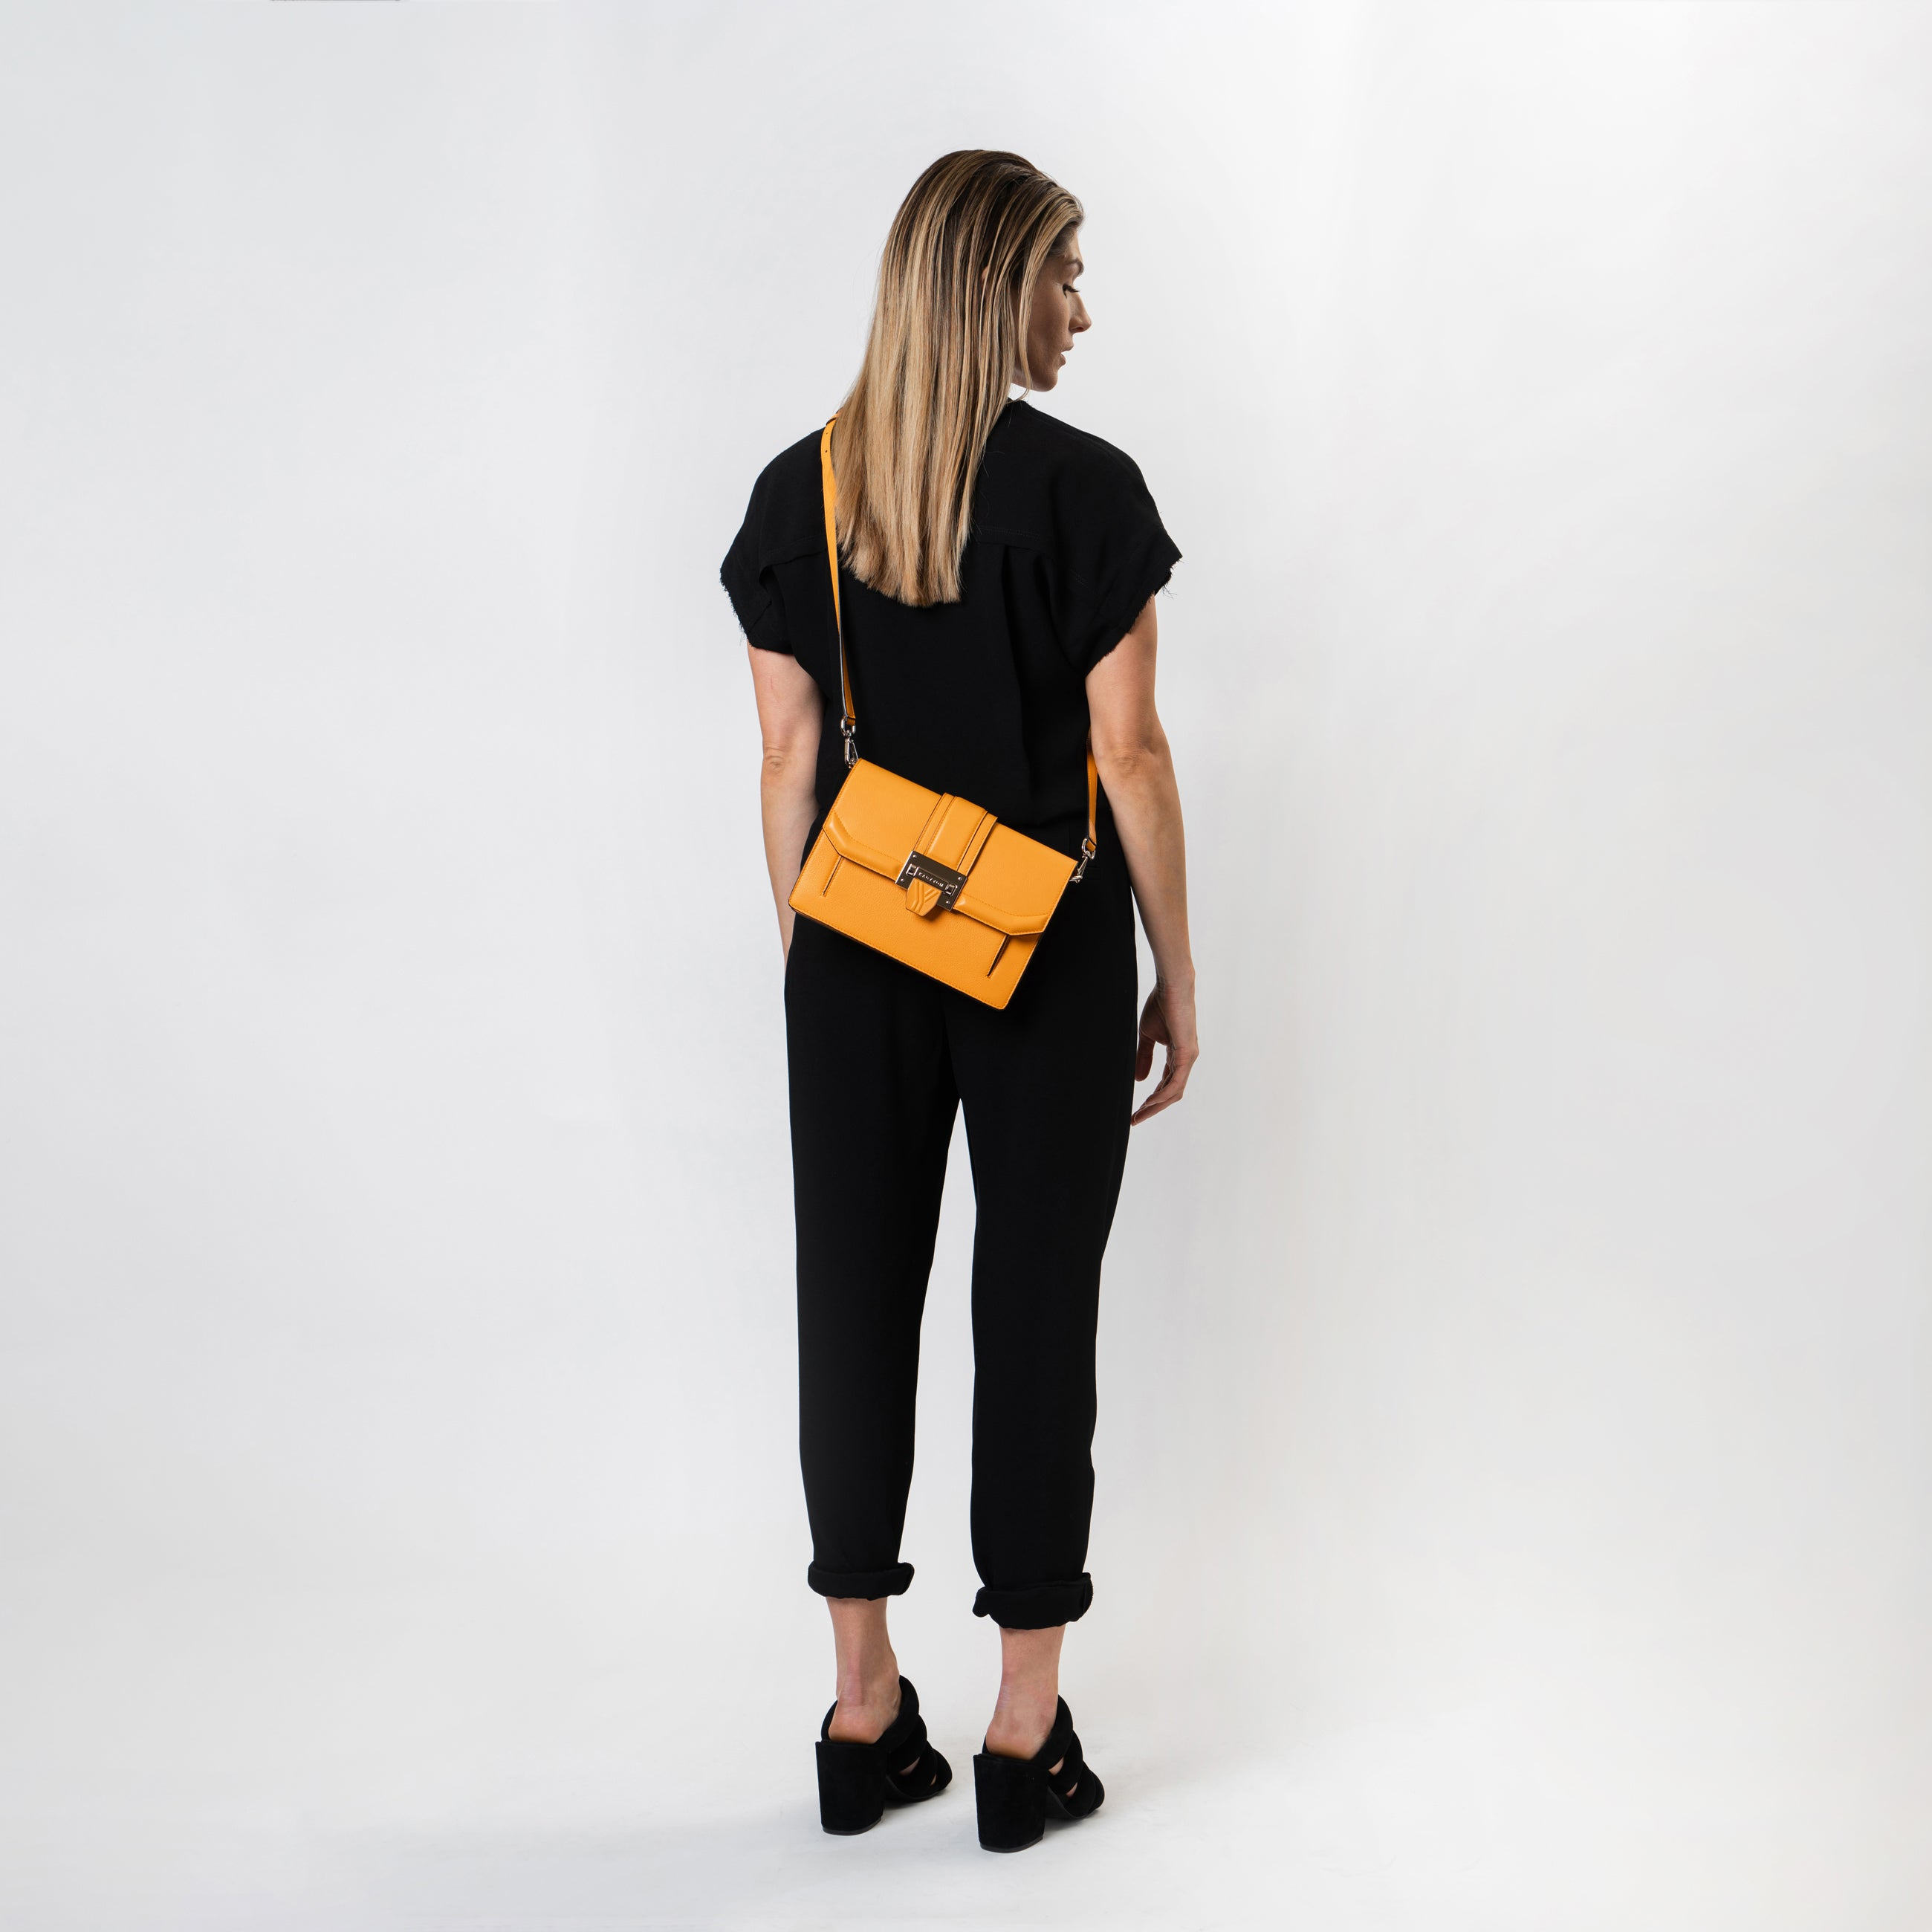 Eun-Bi clutch in Marigold